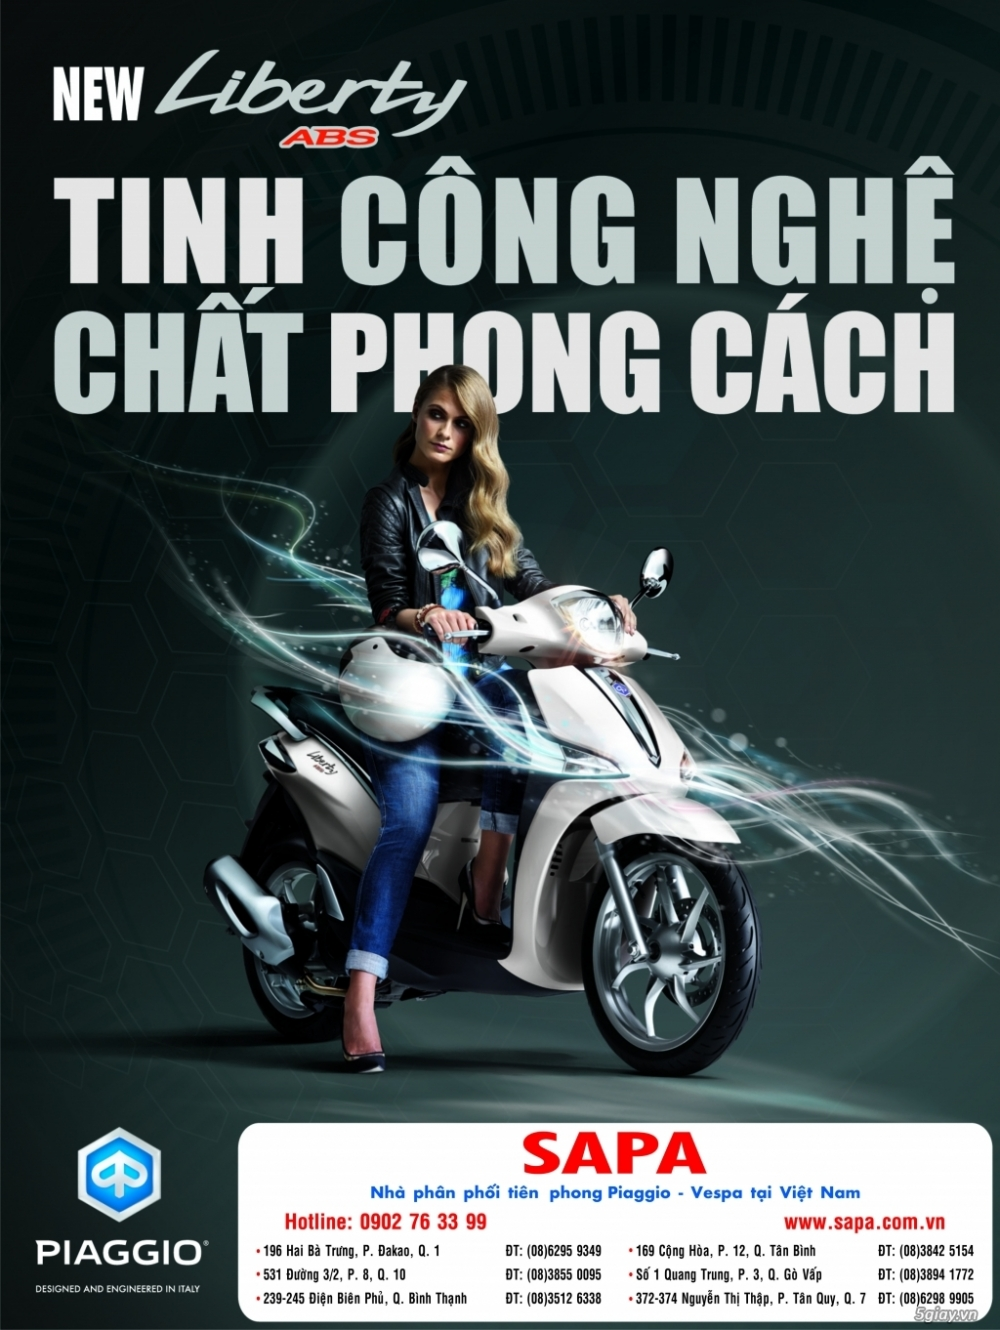 New Liberty ABS Hoan Toan Moi 0935282928 Huy Phuoc